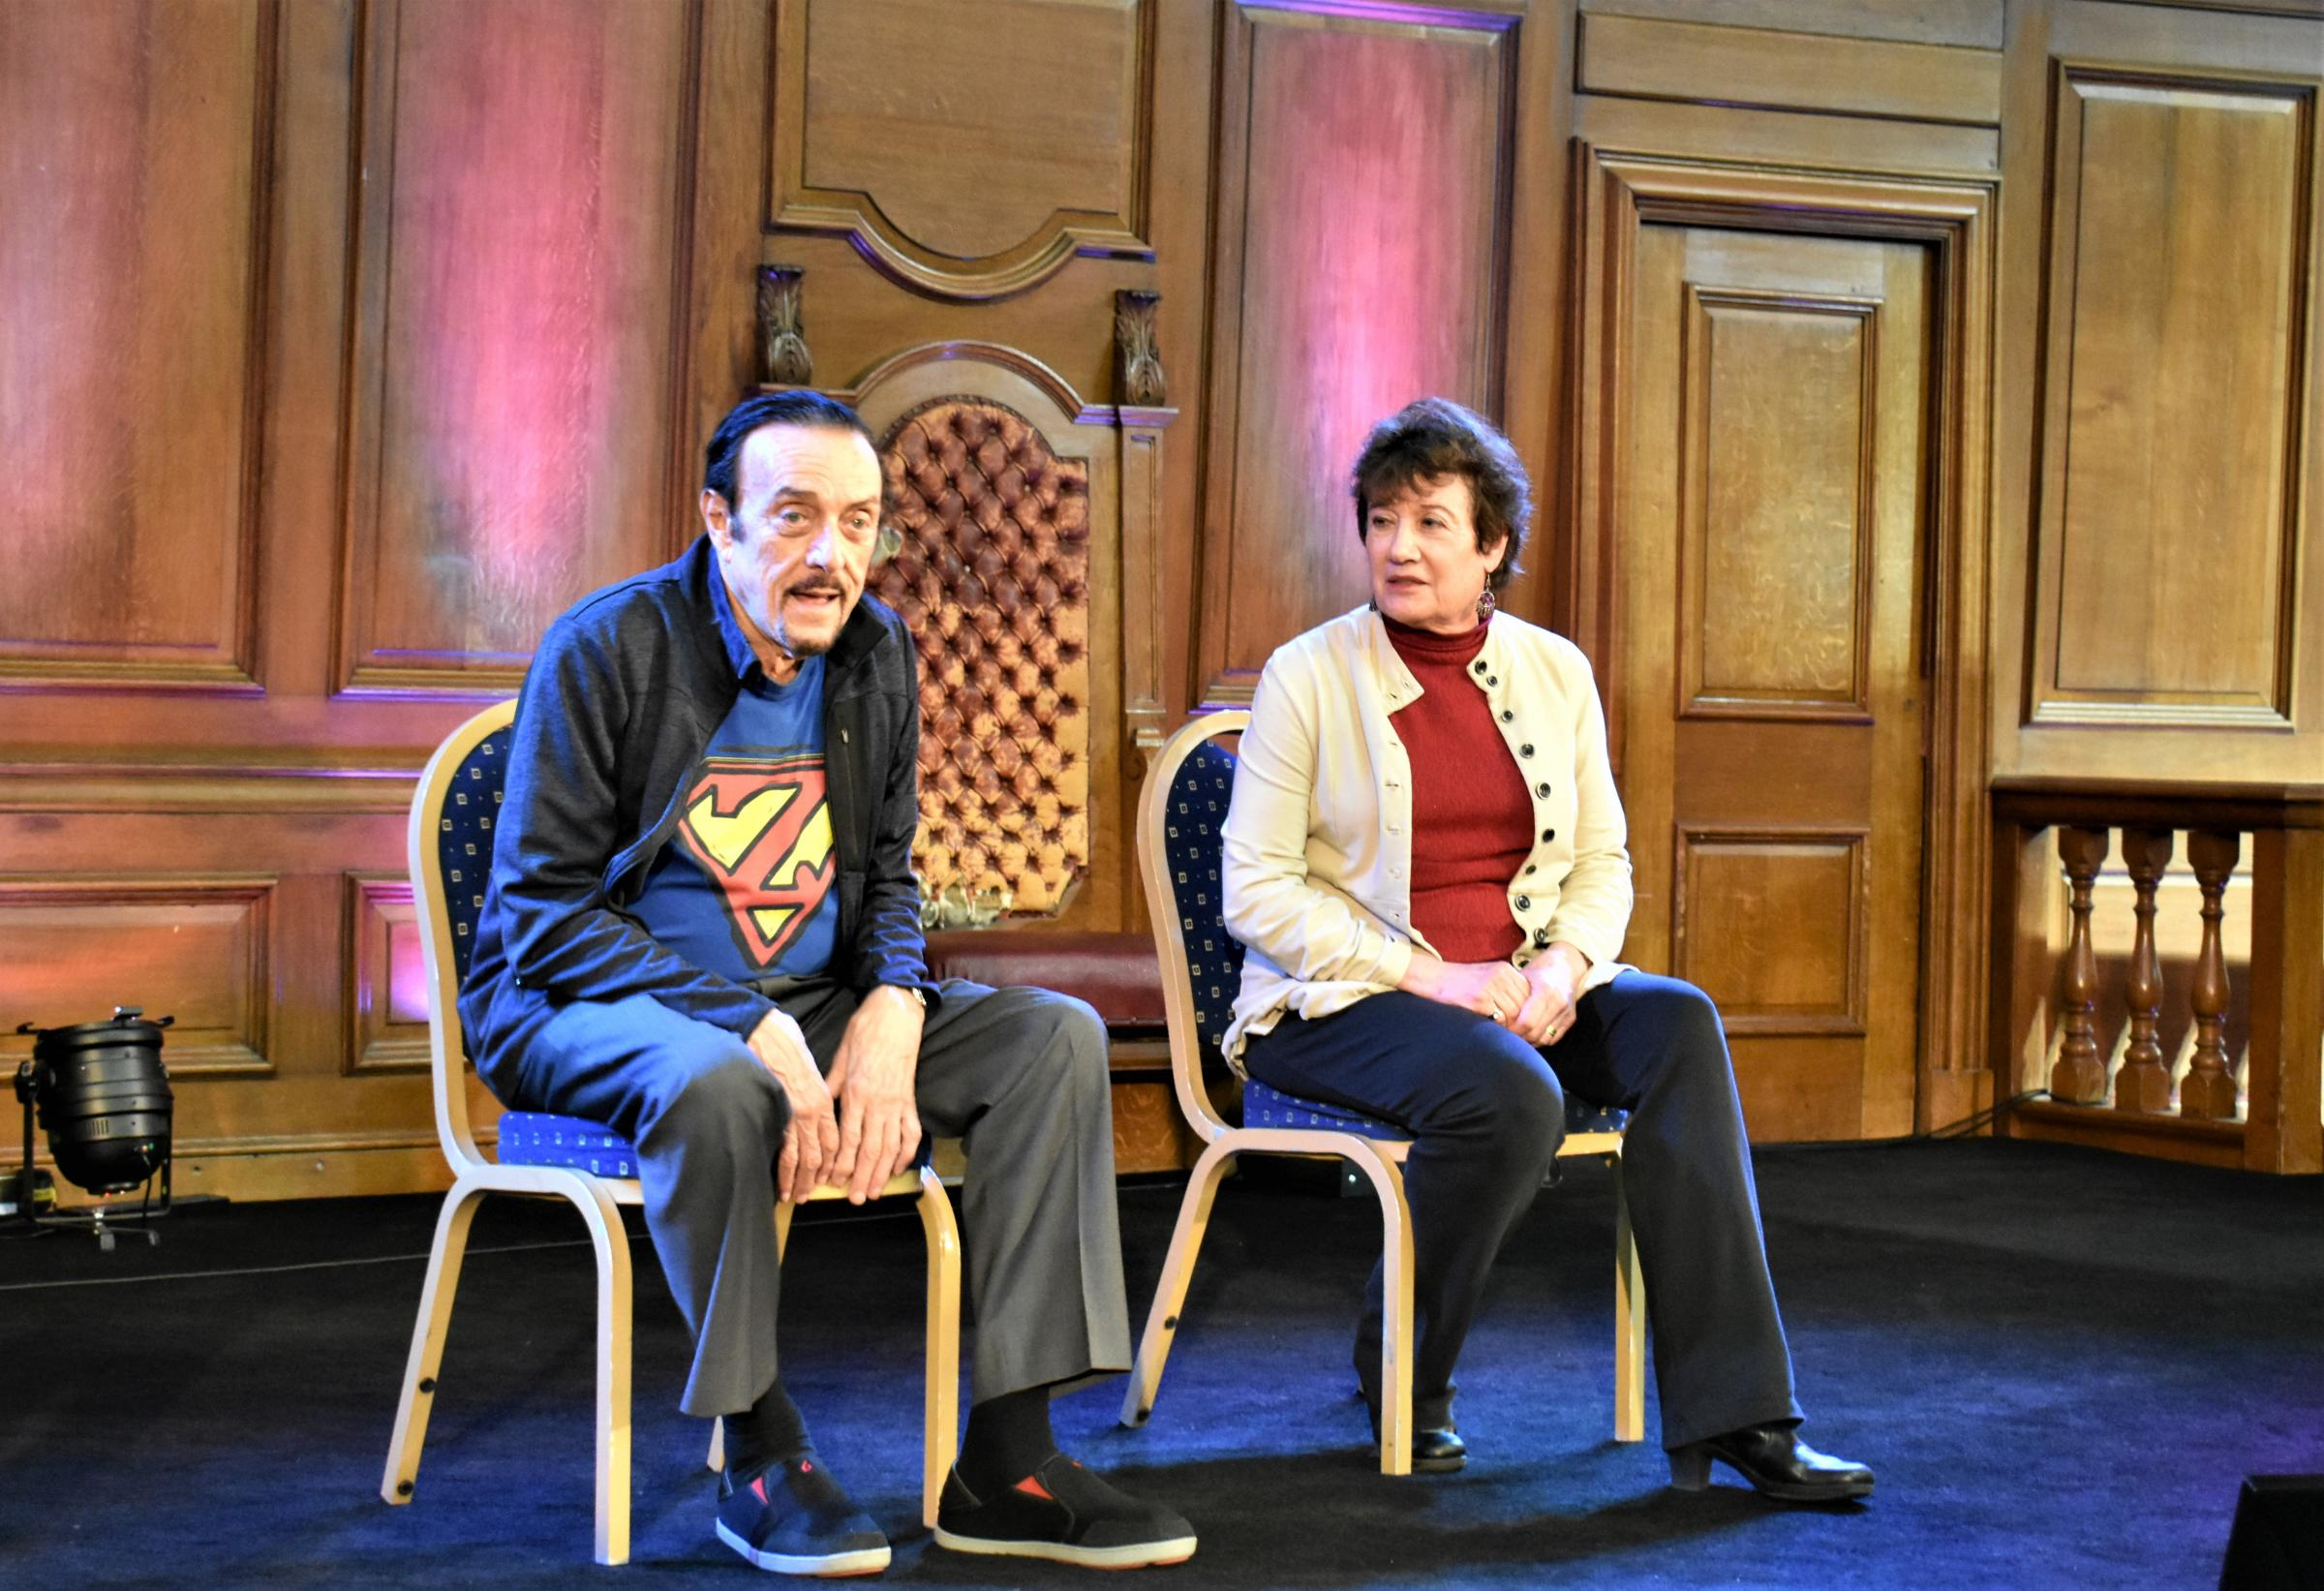 Dr Zimbardo and his wife